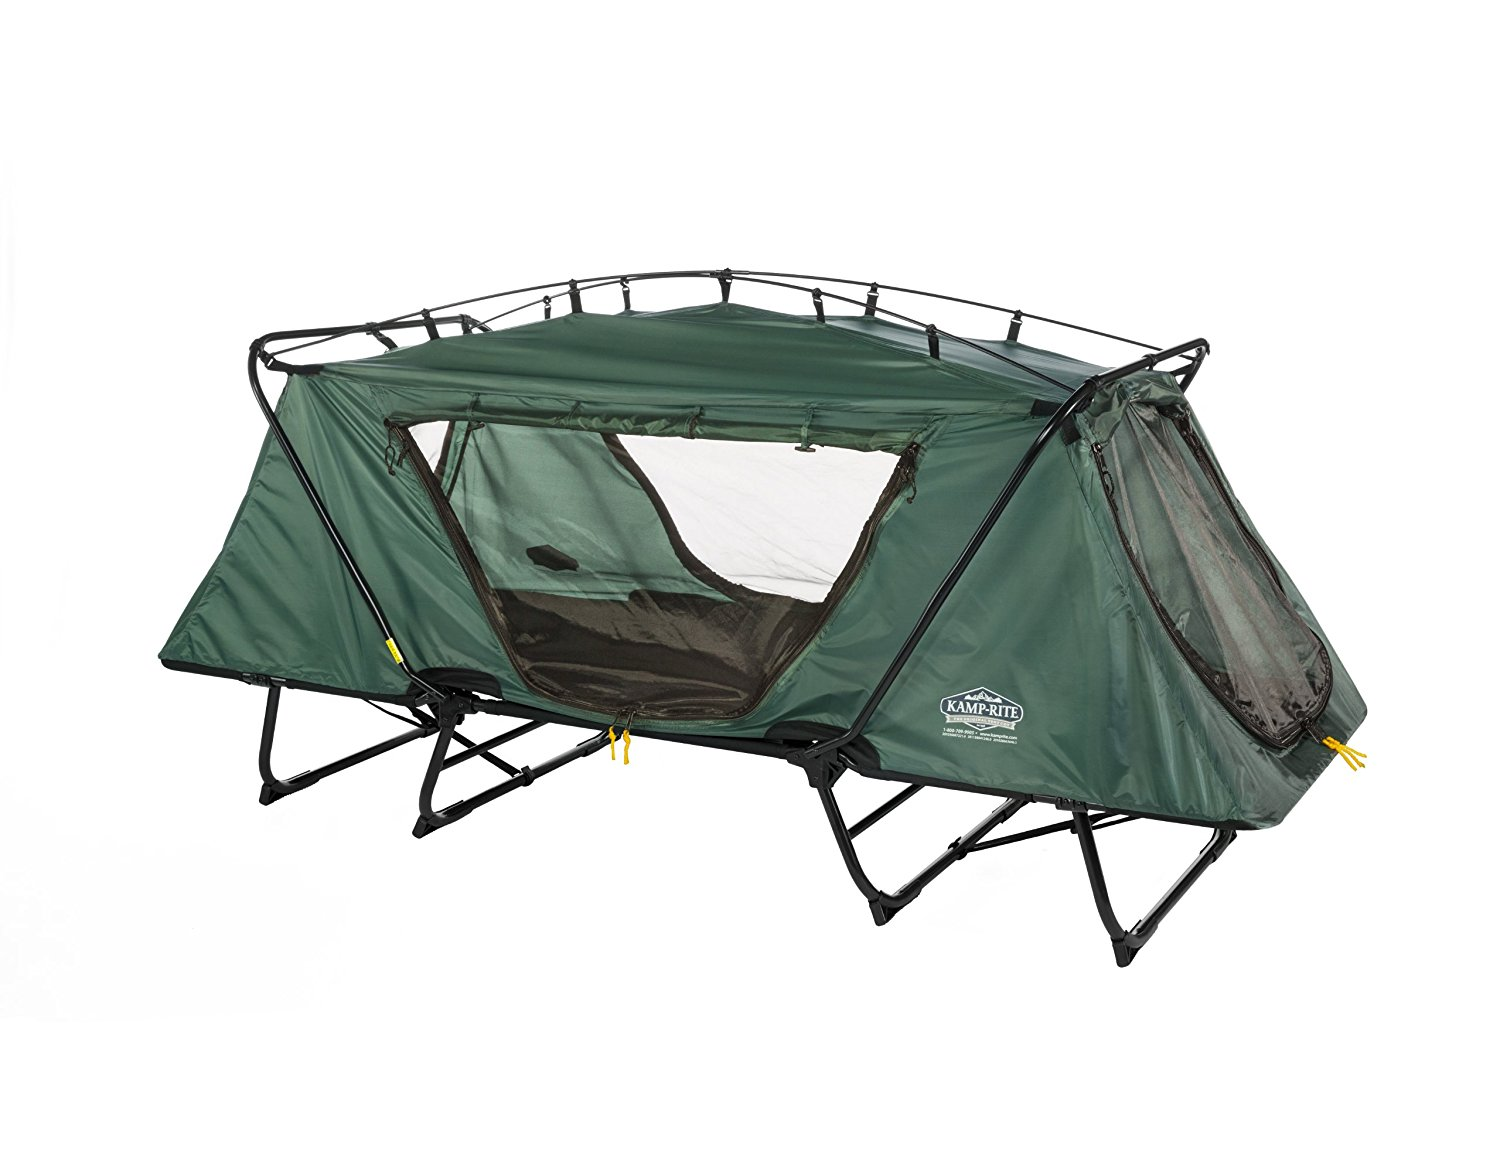 Kamp-Rite Sleeping Cots Reviews and Buying Guide by www.snoremagazine.com